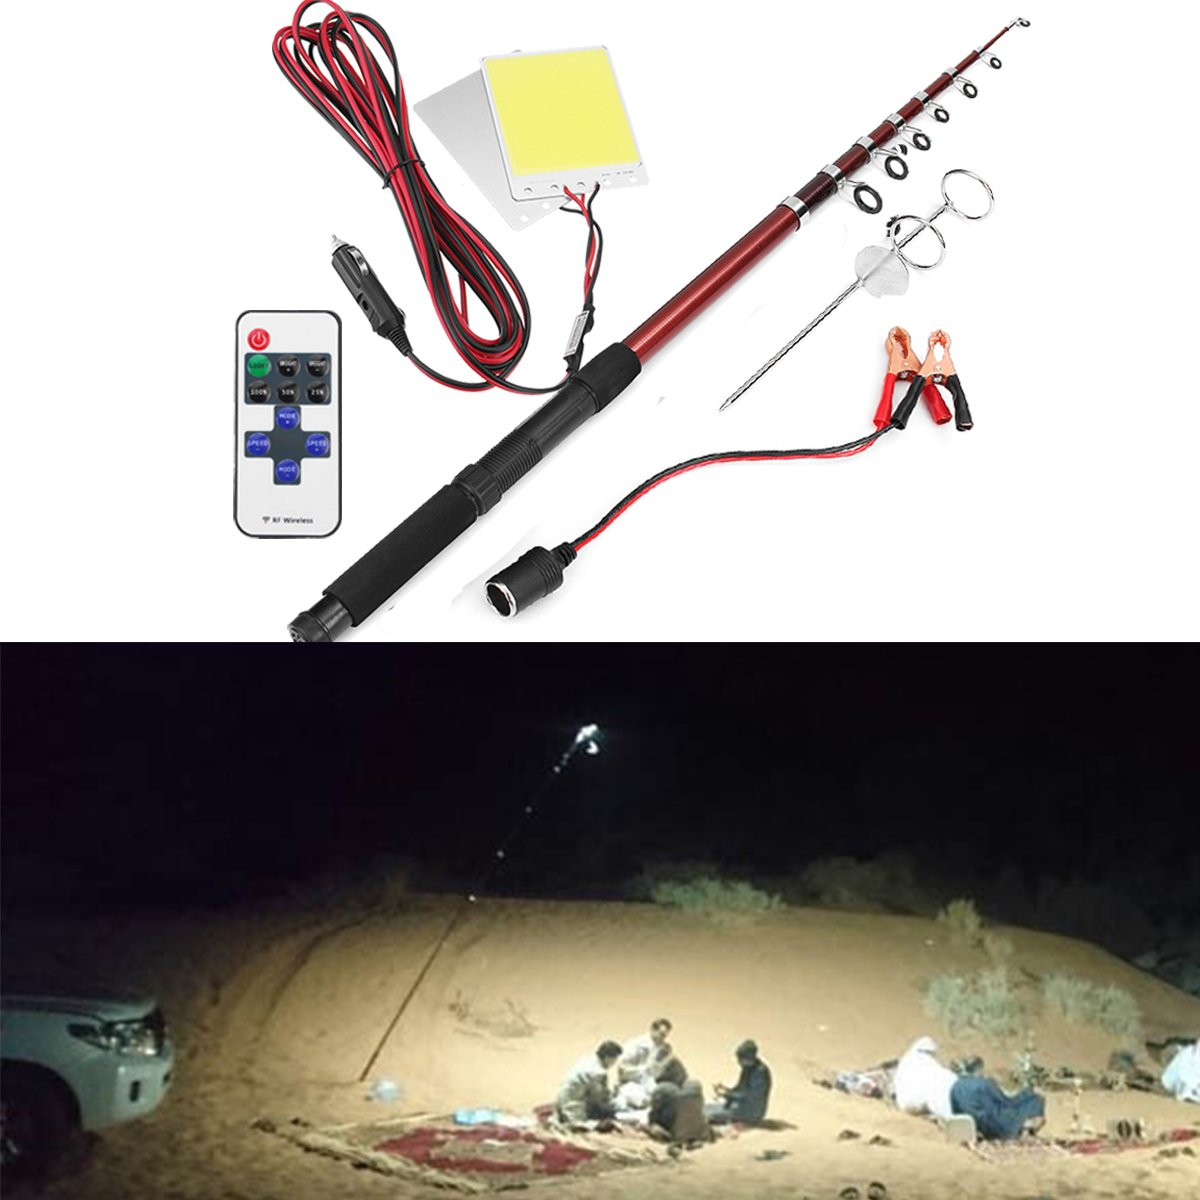 HITSAN 12V 296W Telescopic Fishing Lamp Car Rod Light LED Camping Lamp Remote Controller Car Lantern One Piece by HITSAN